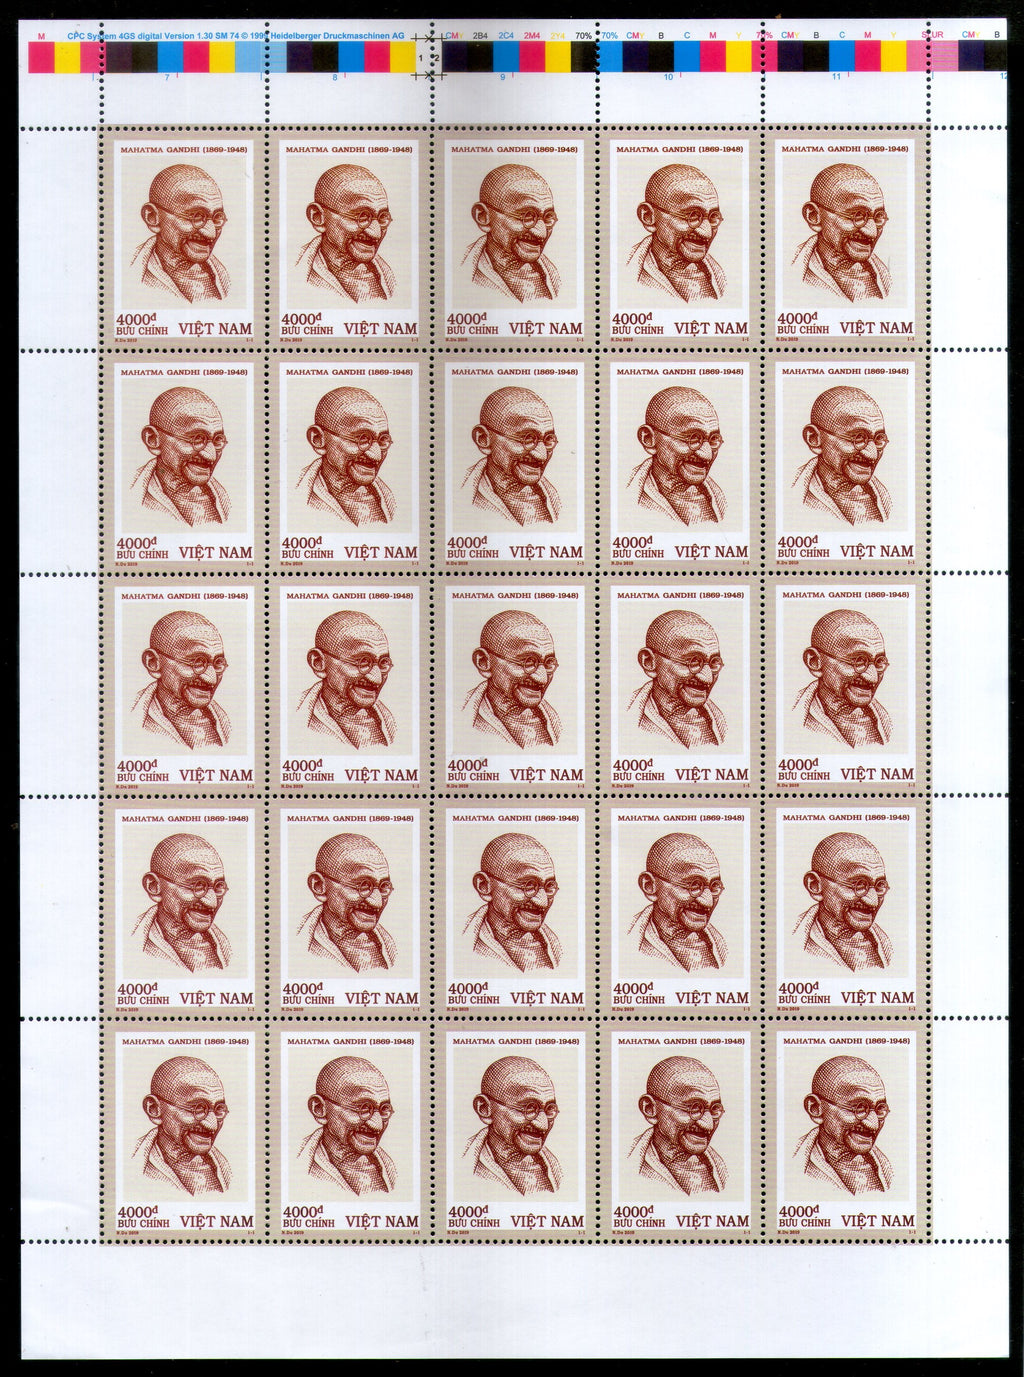 Vietnam 2019 Mahatma Gandhi of India 150th Birth Anniversary Full Sheet of 25 Stamps MNH # 5777C